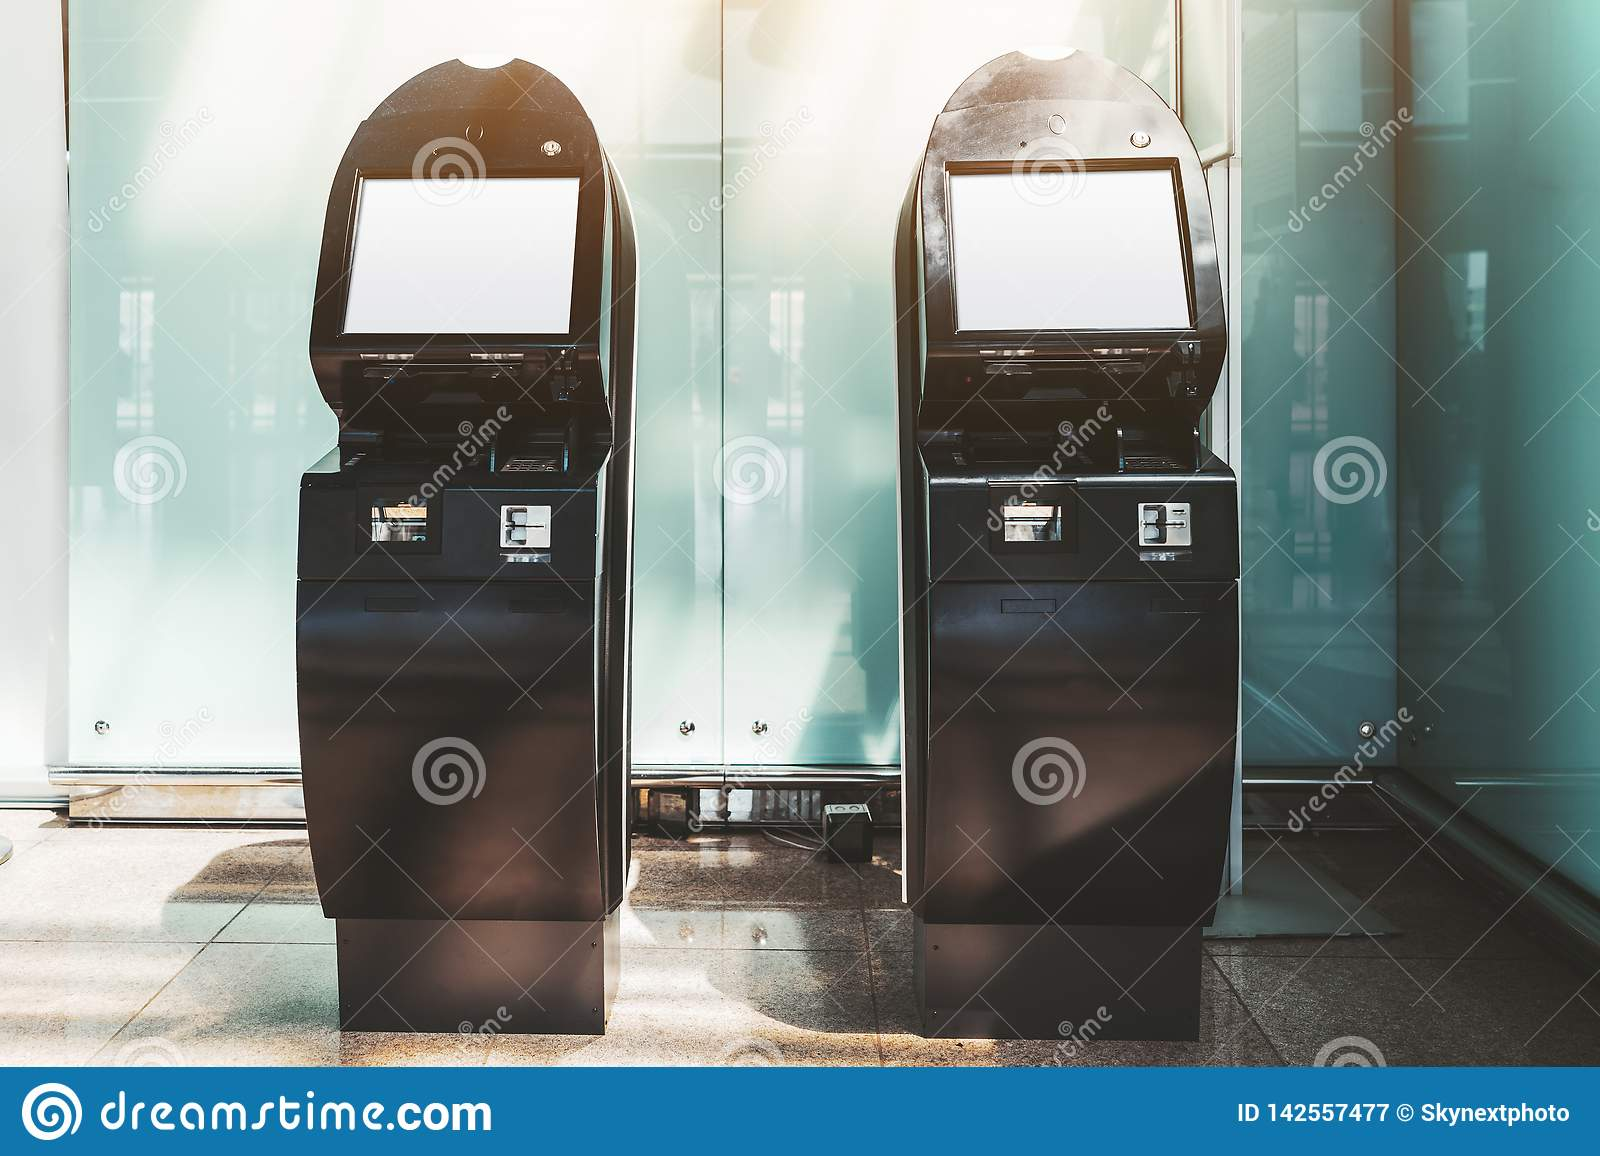 Two self-service terminals mockups